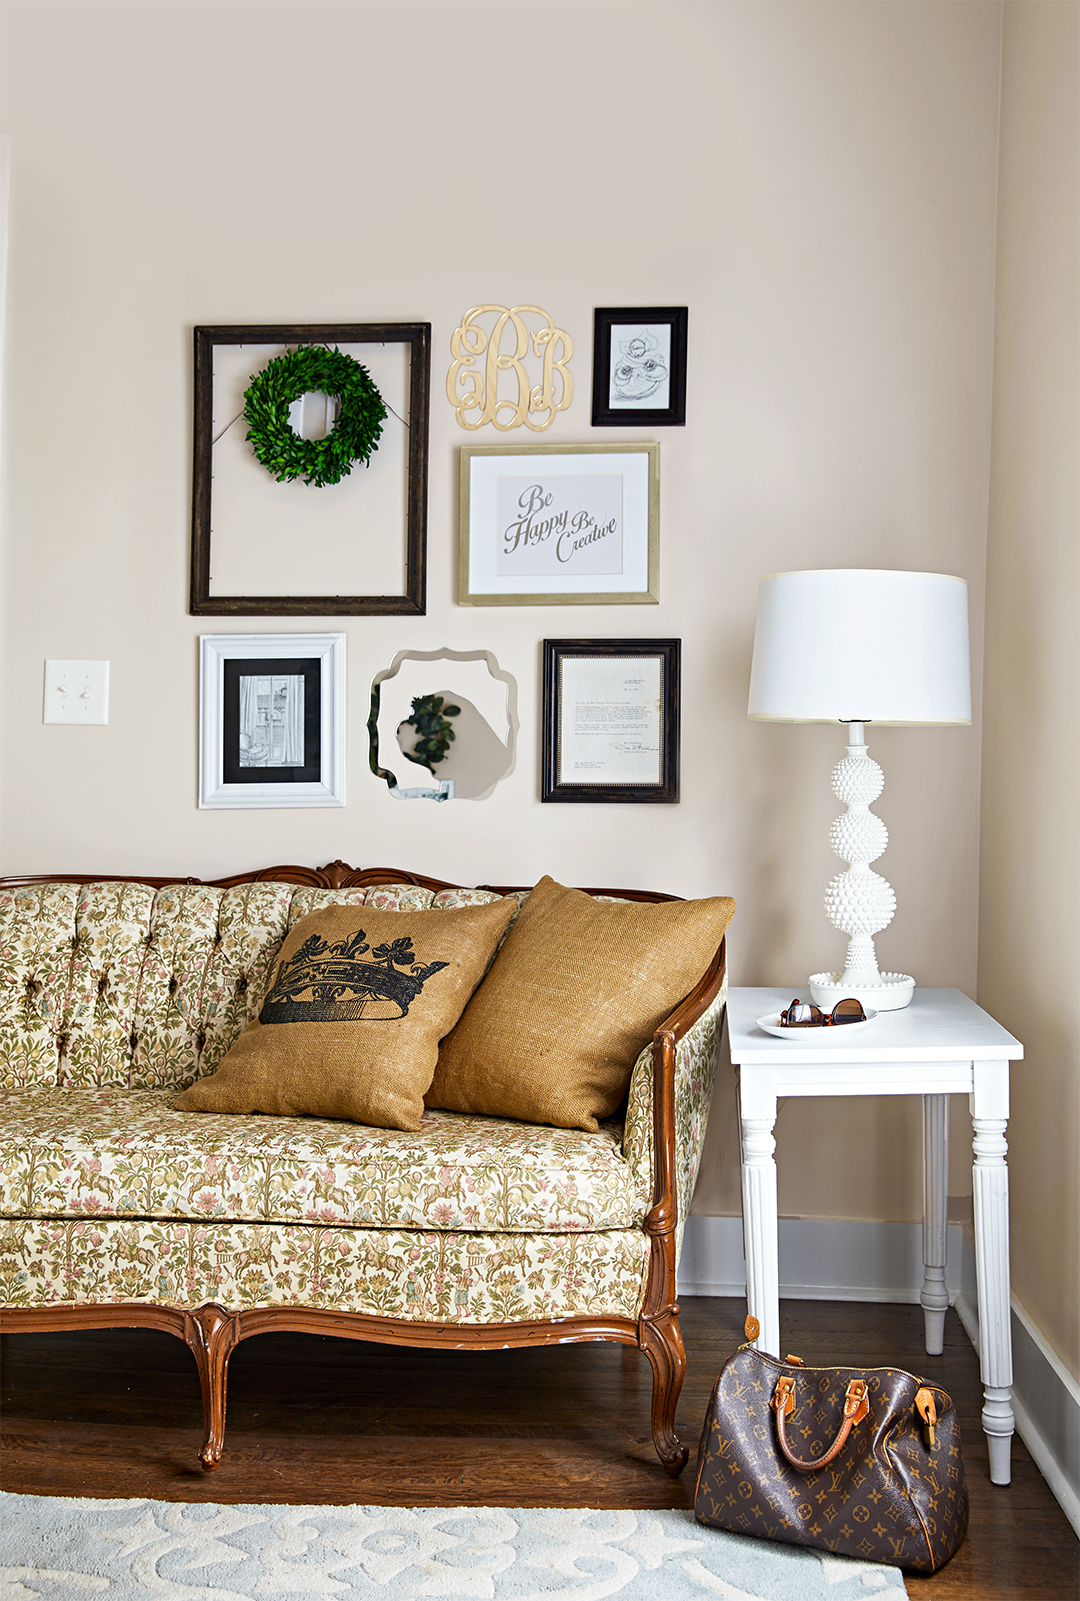 vintage sofa in home office with collection of personal art